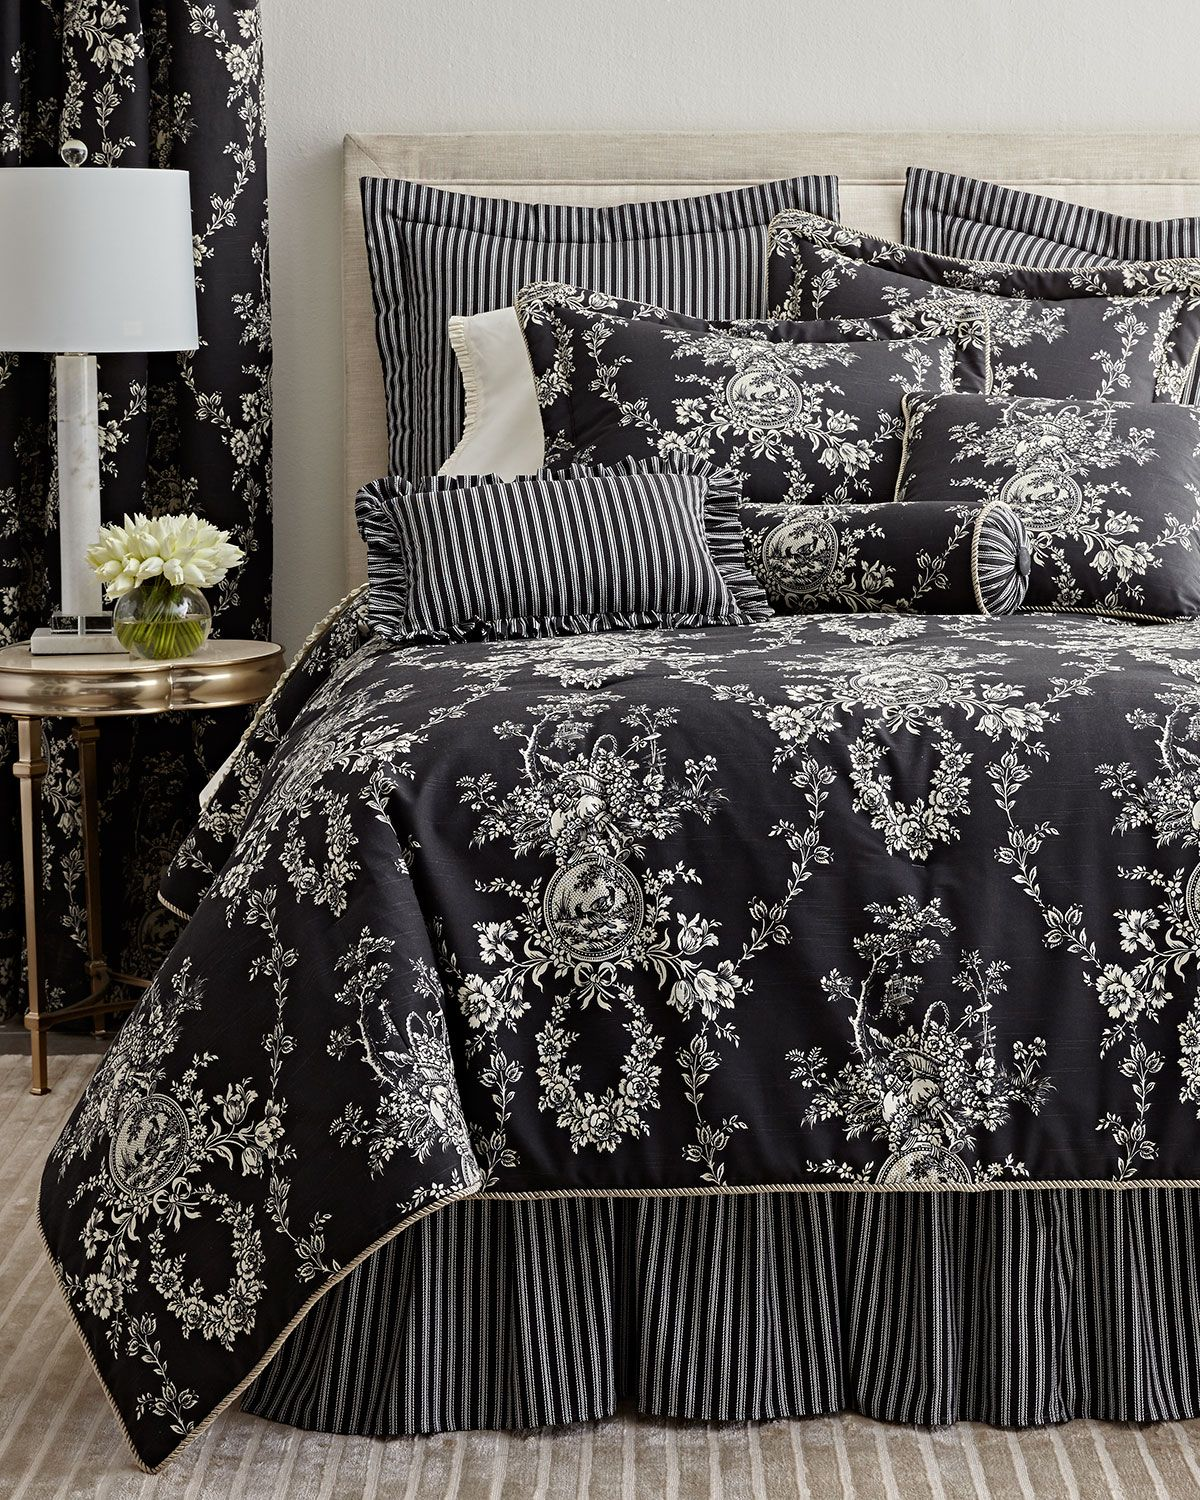 Blue and white toile bedding - Sherry Kline Home Collection King French Toile Comforter Set Queen French Toile Comforter Set European French Toile Striped Sham